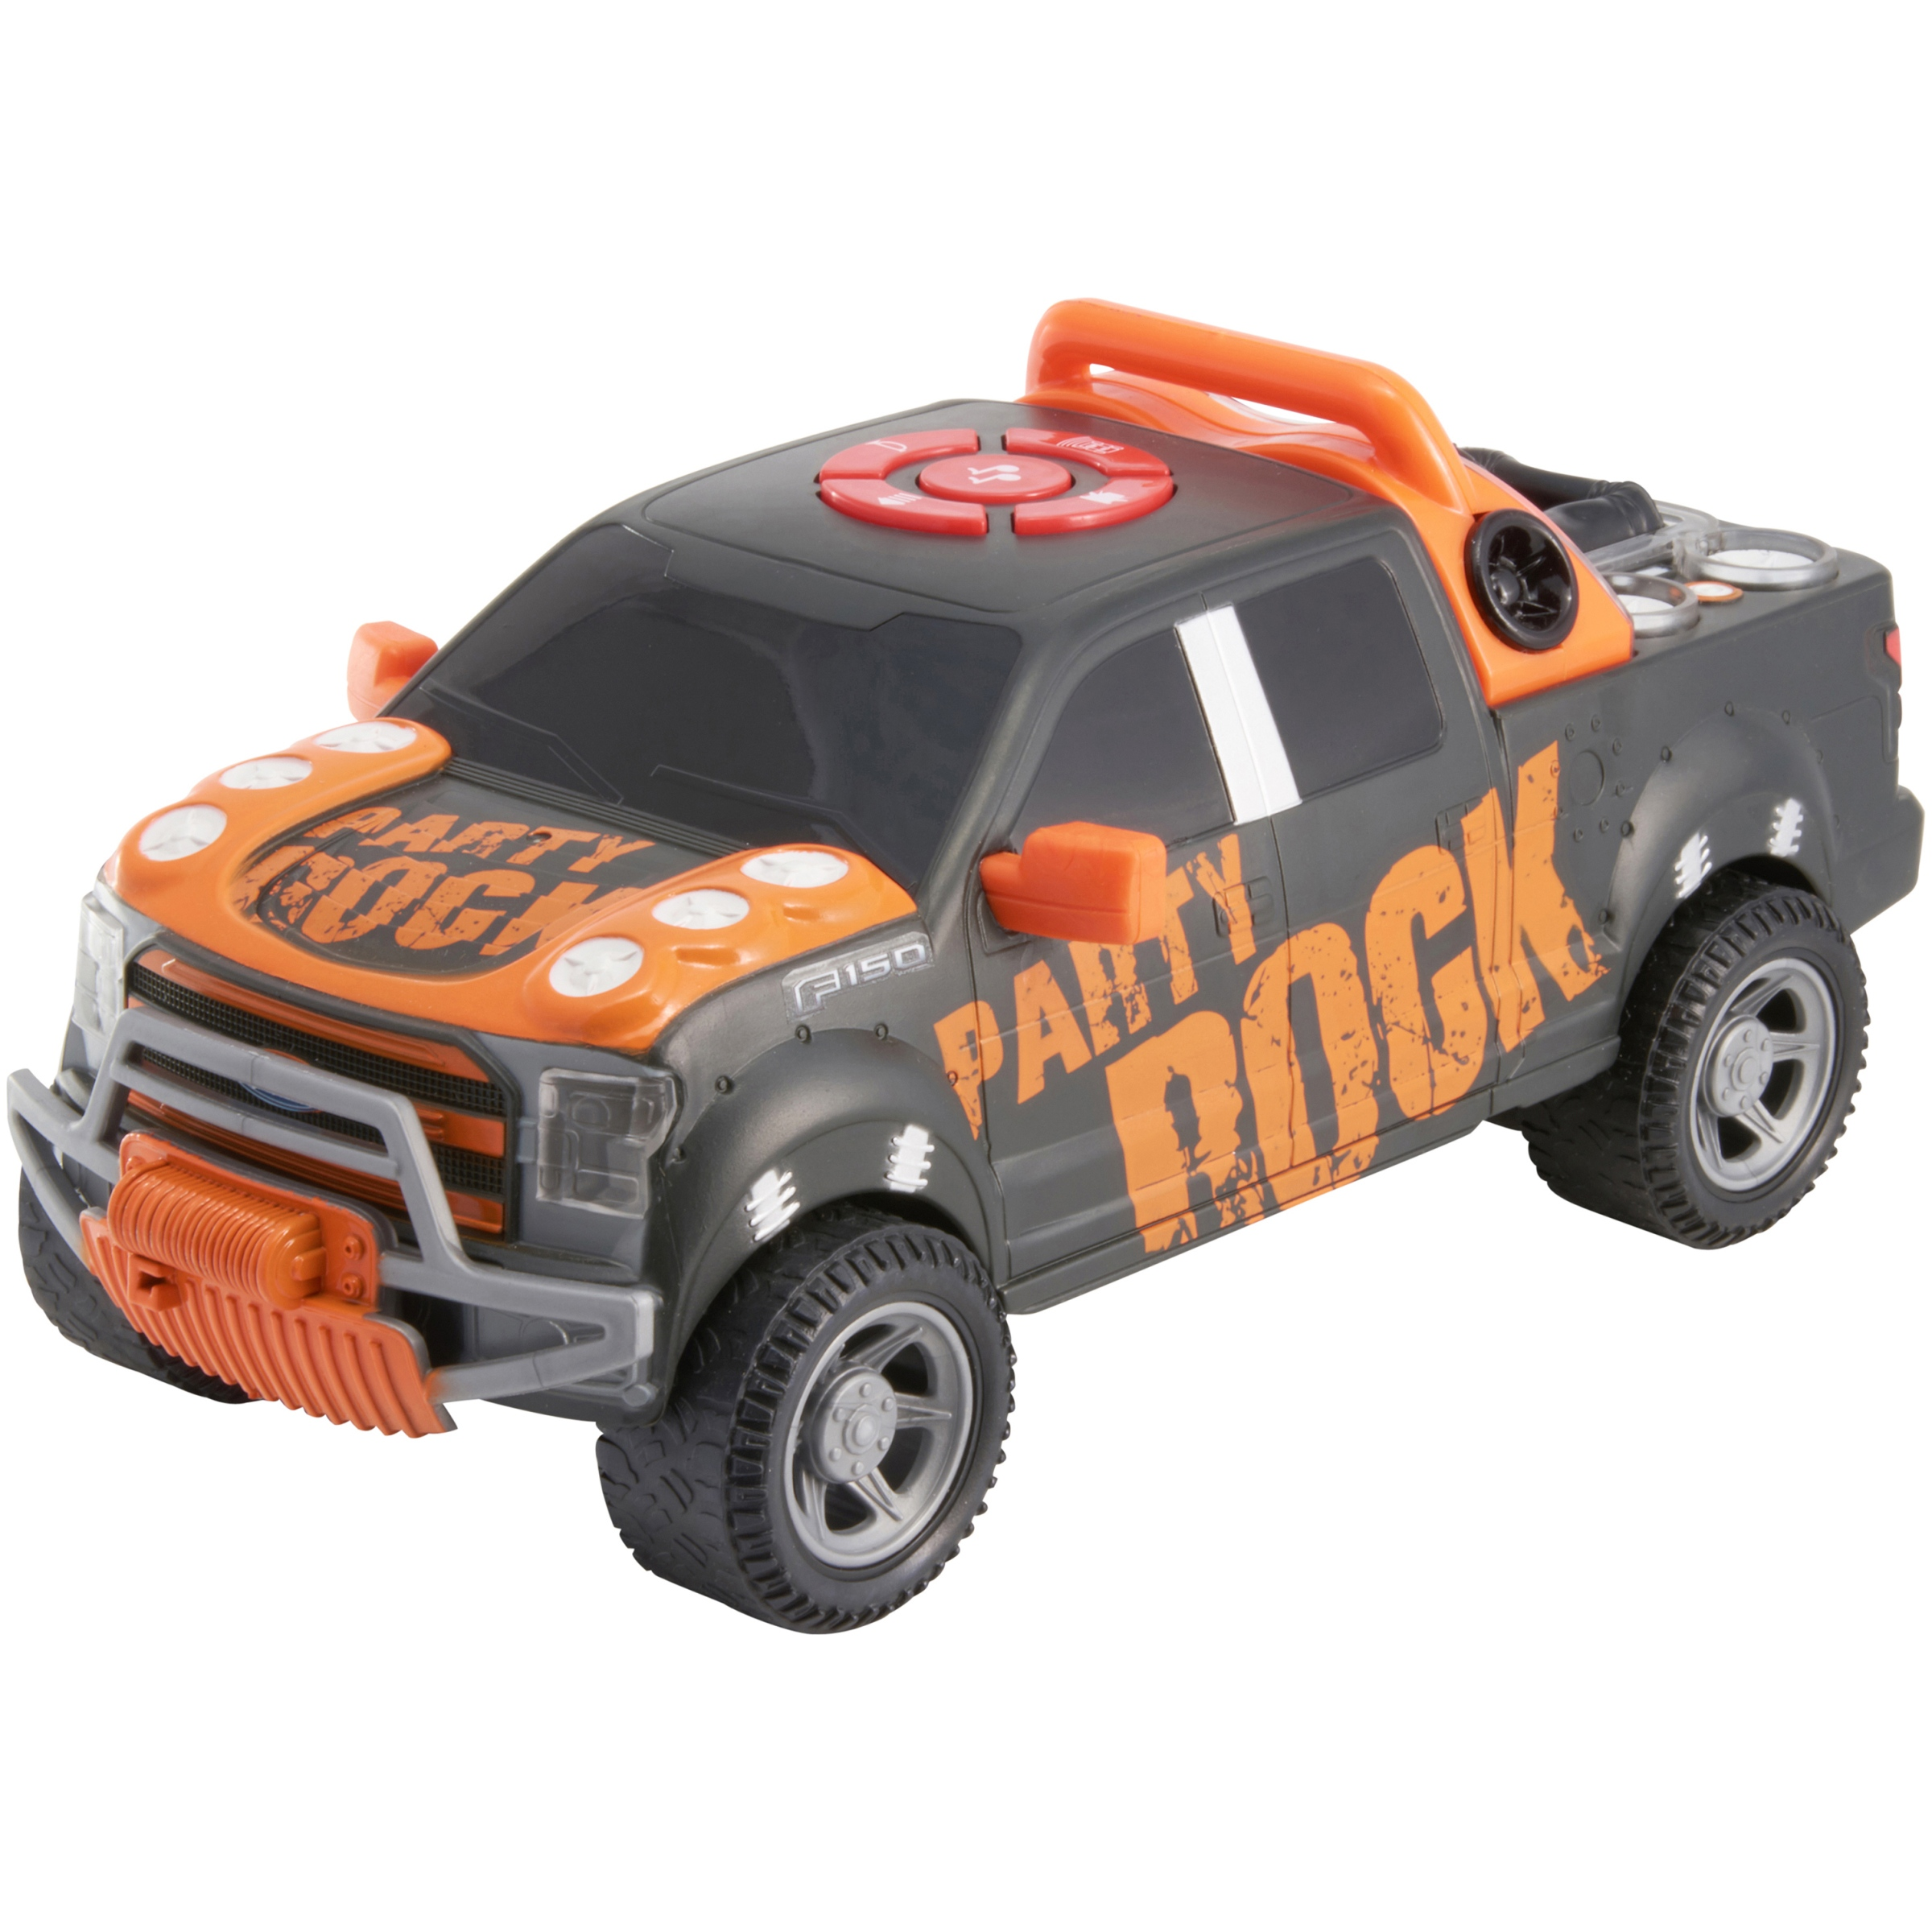 Adventure Force Rowdy Rocker Motorized Vehicle, Black